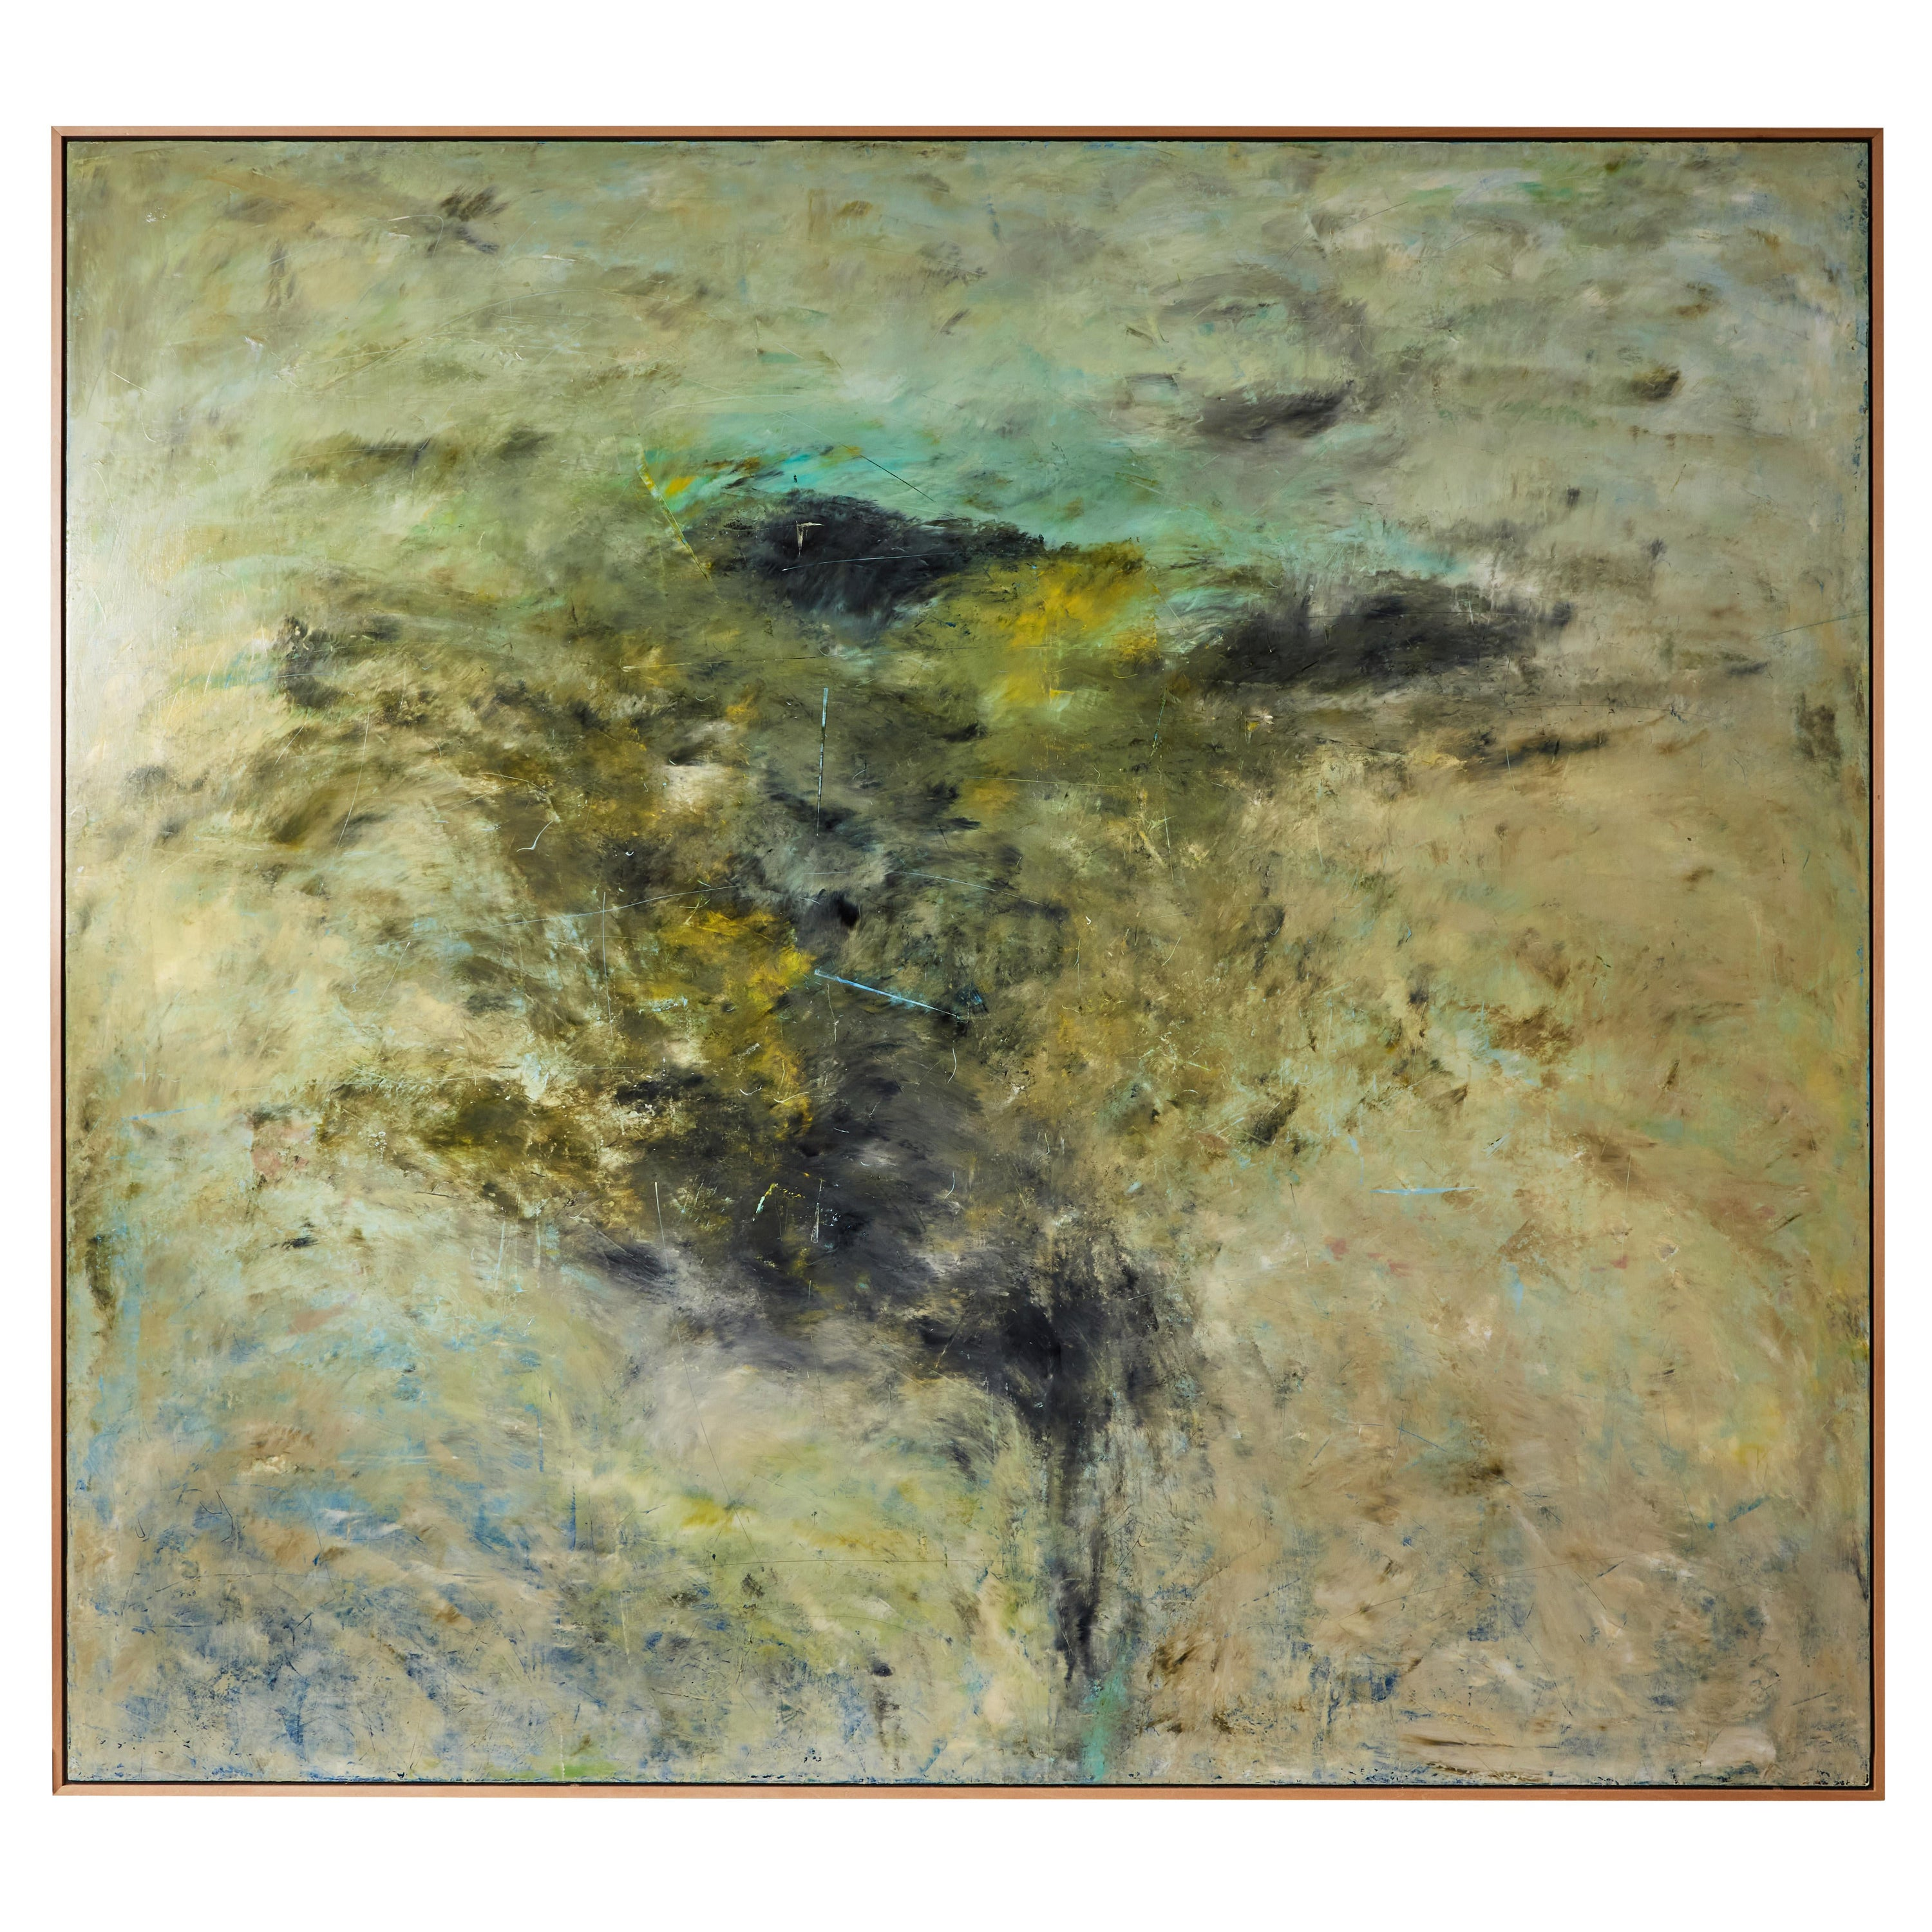 Large Scale, Contemporary Abstract Painting